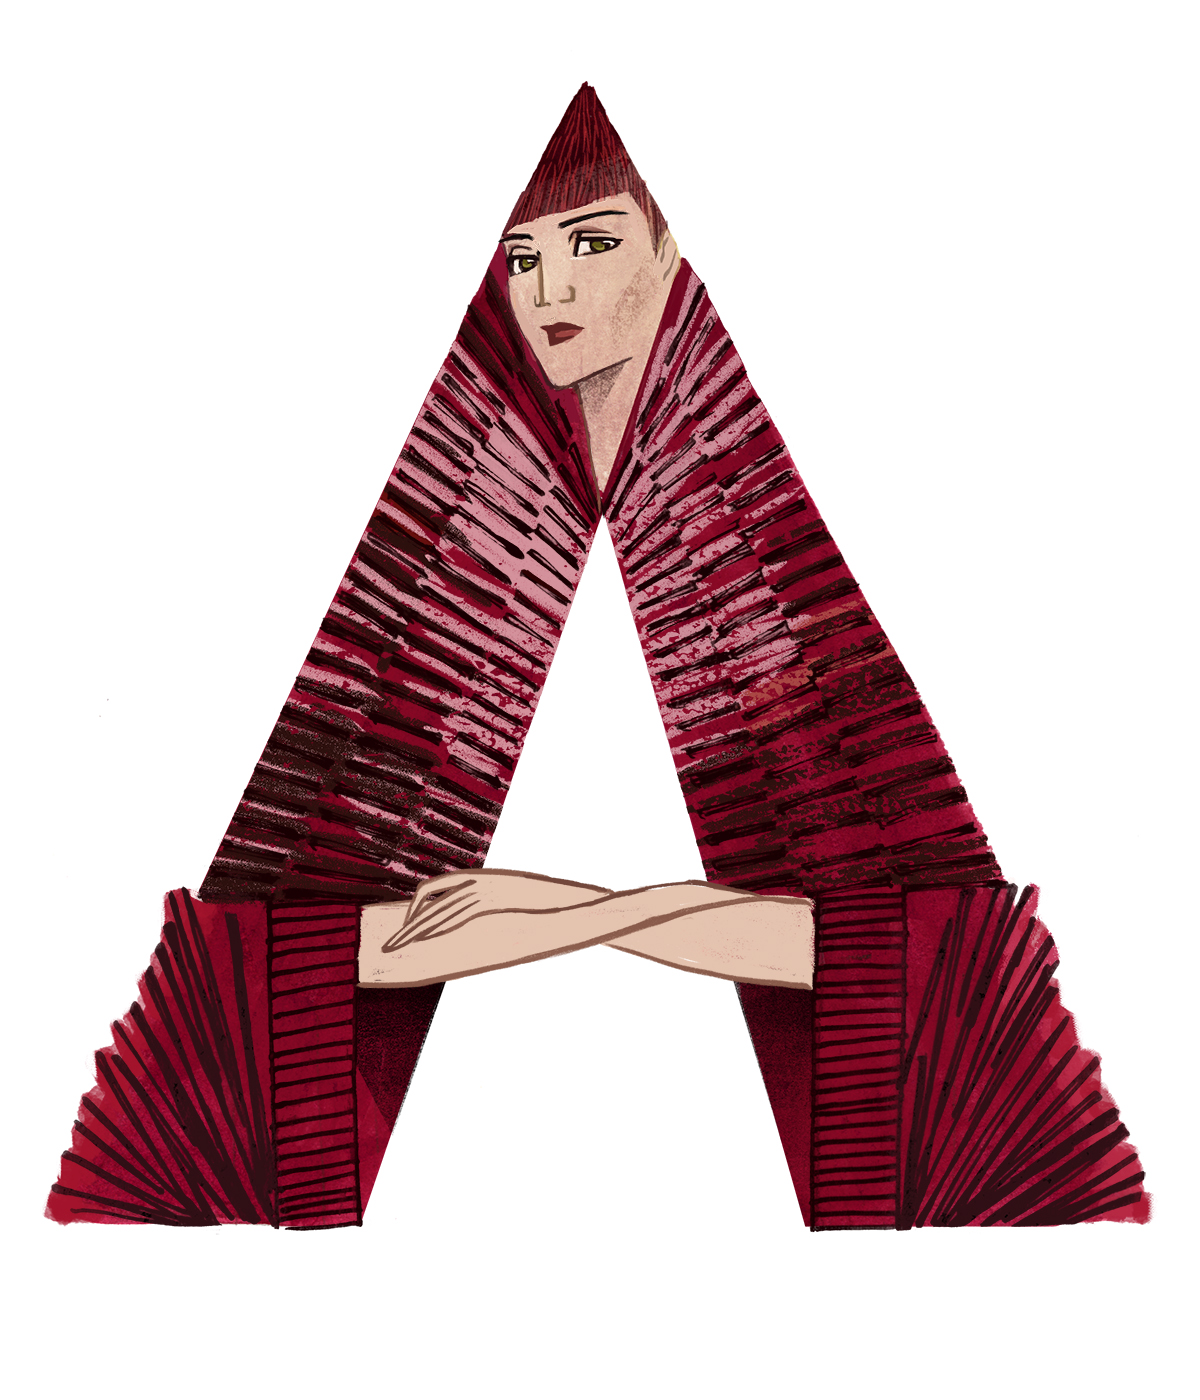 A is from Gareth Pugh